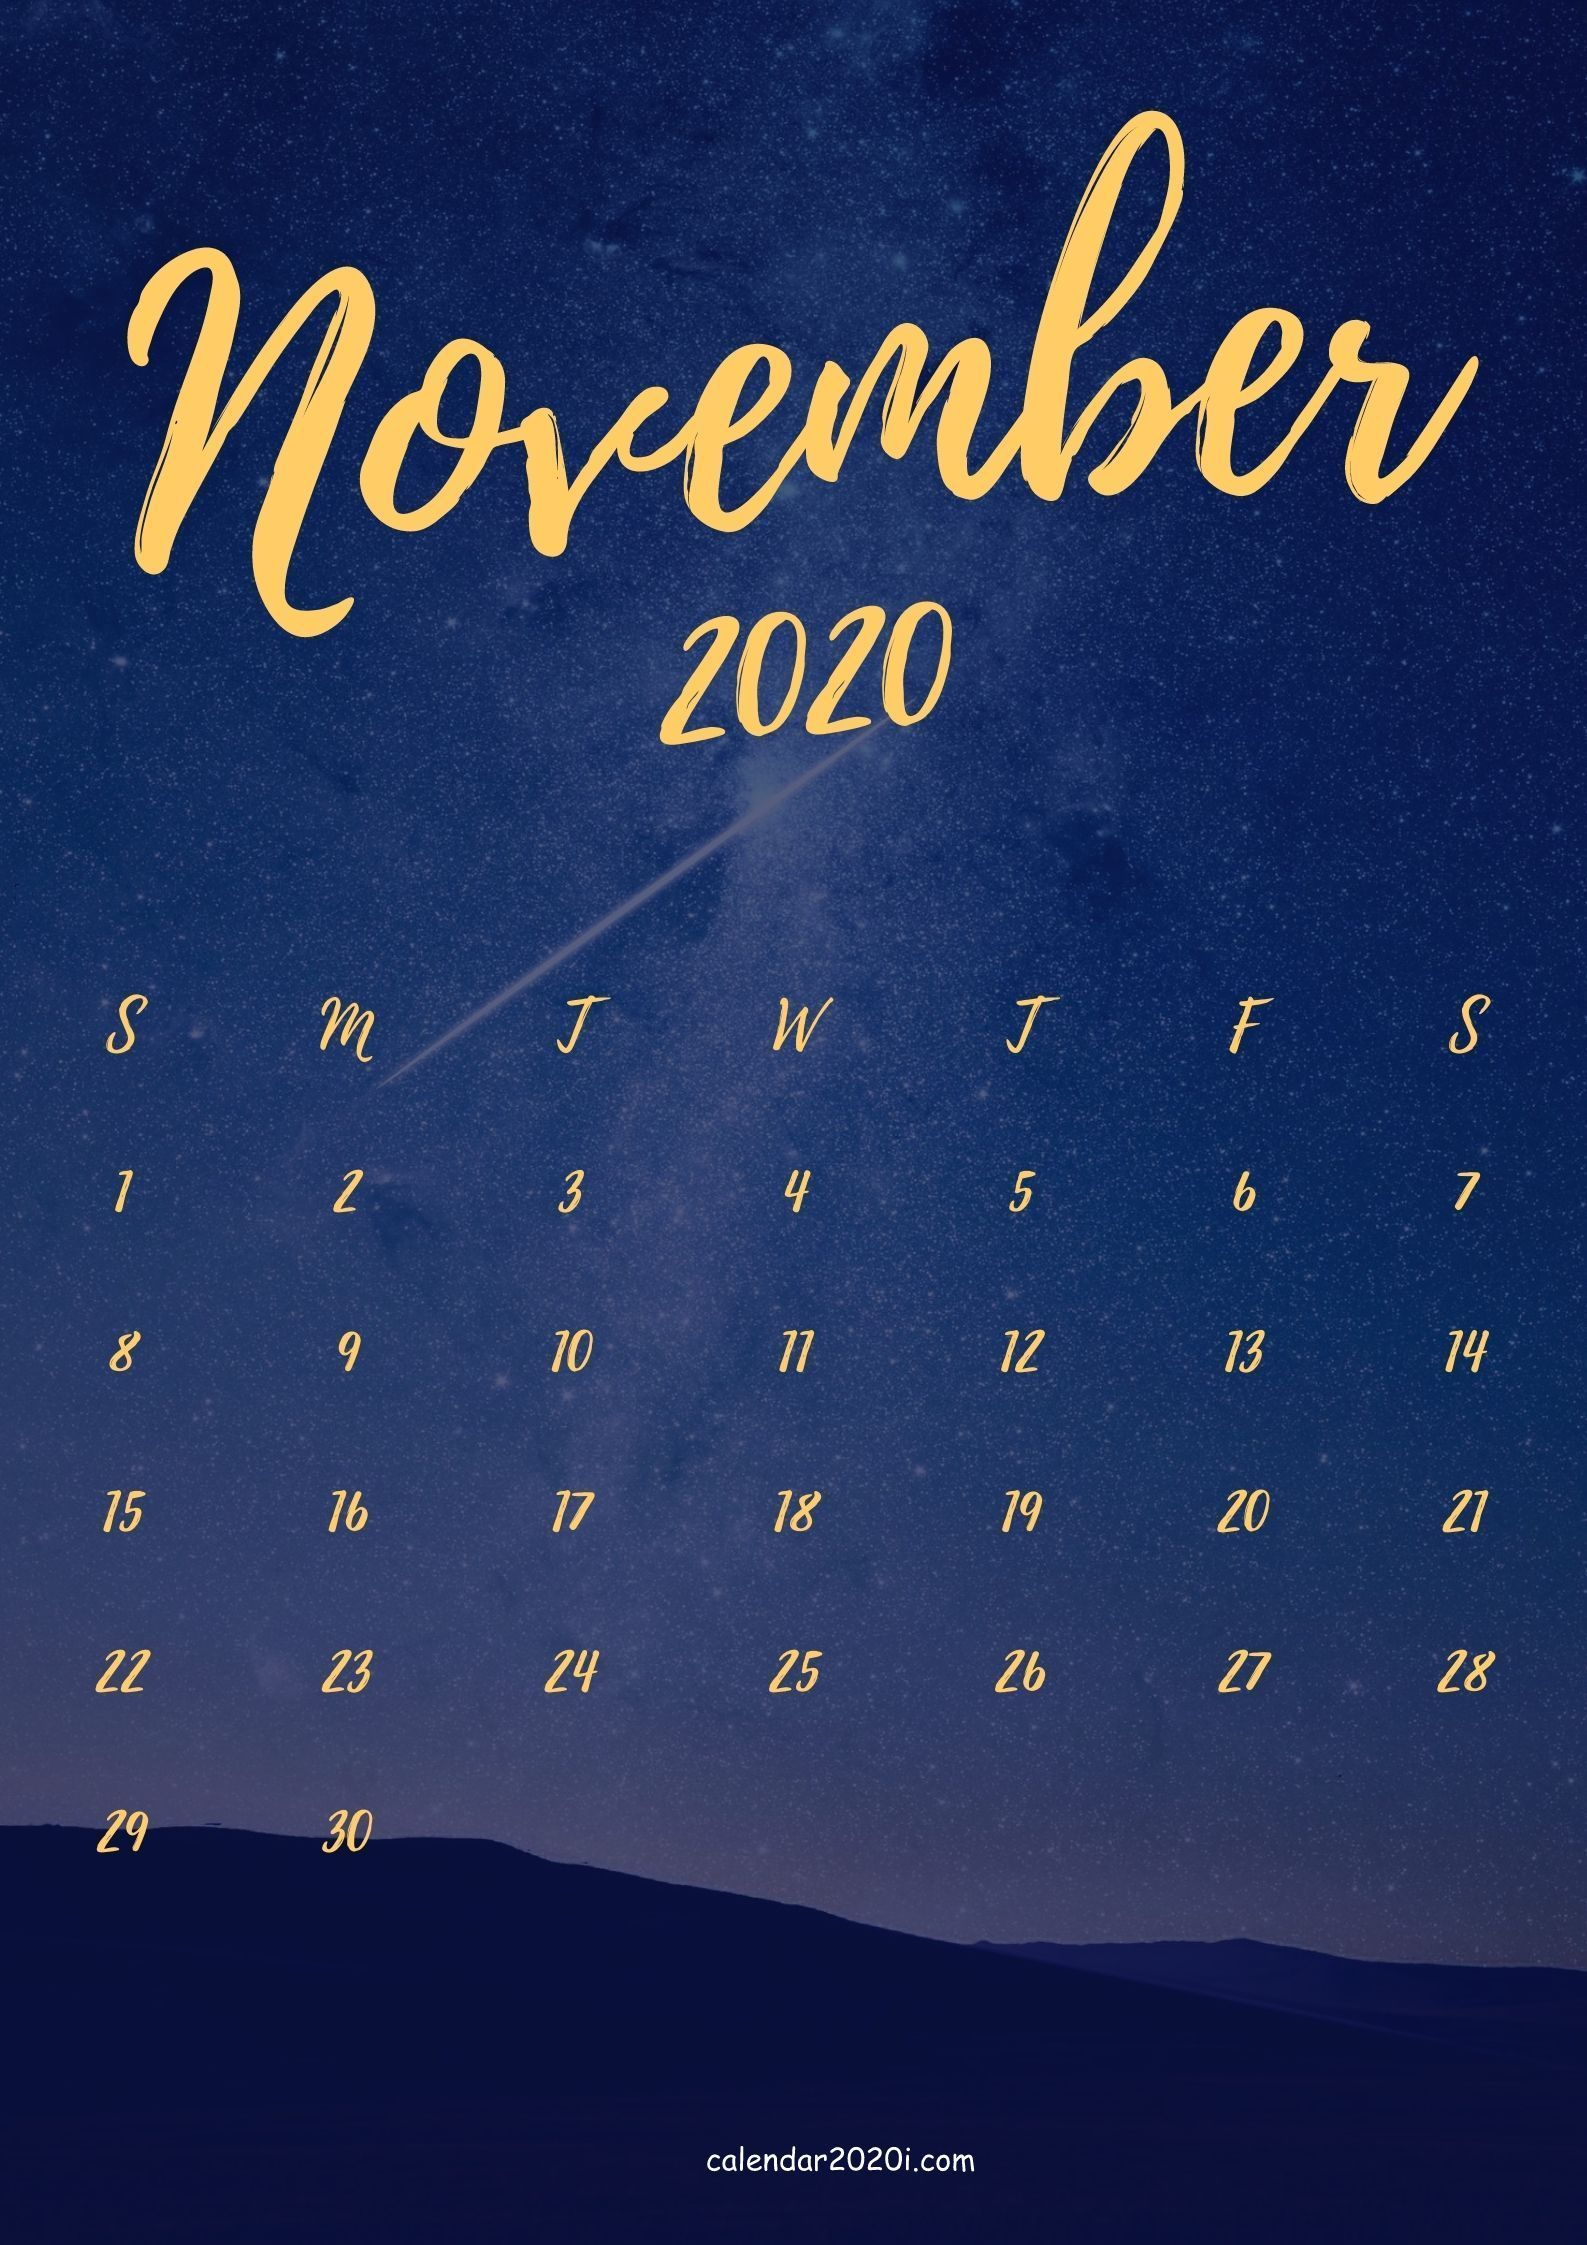 Free November 2020 iPhone calendar wallpapers in HD for mobile screen backgrounds in 2020